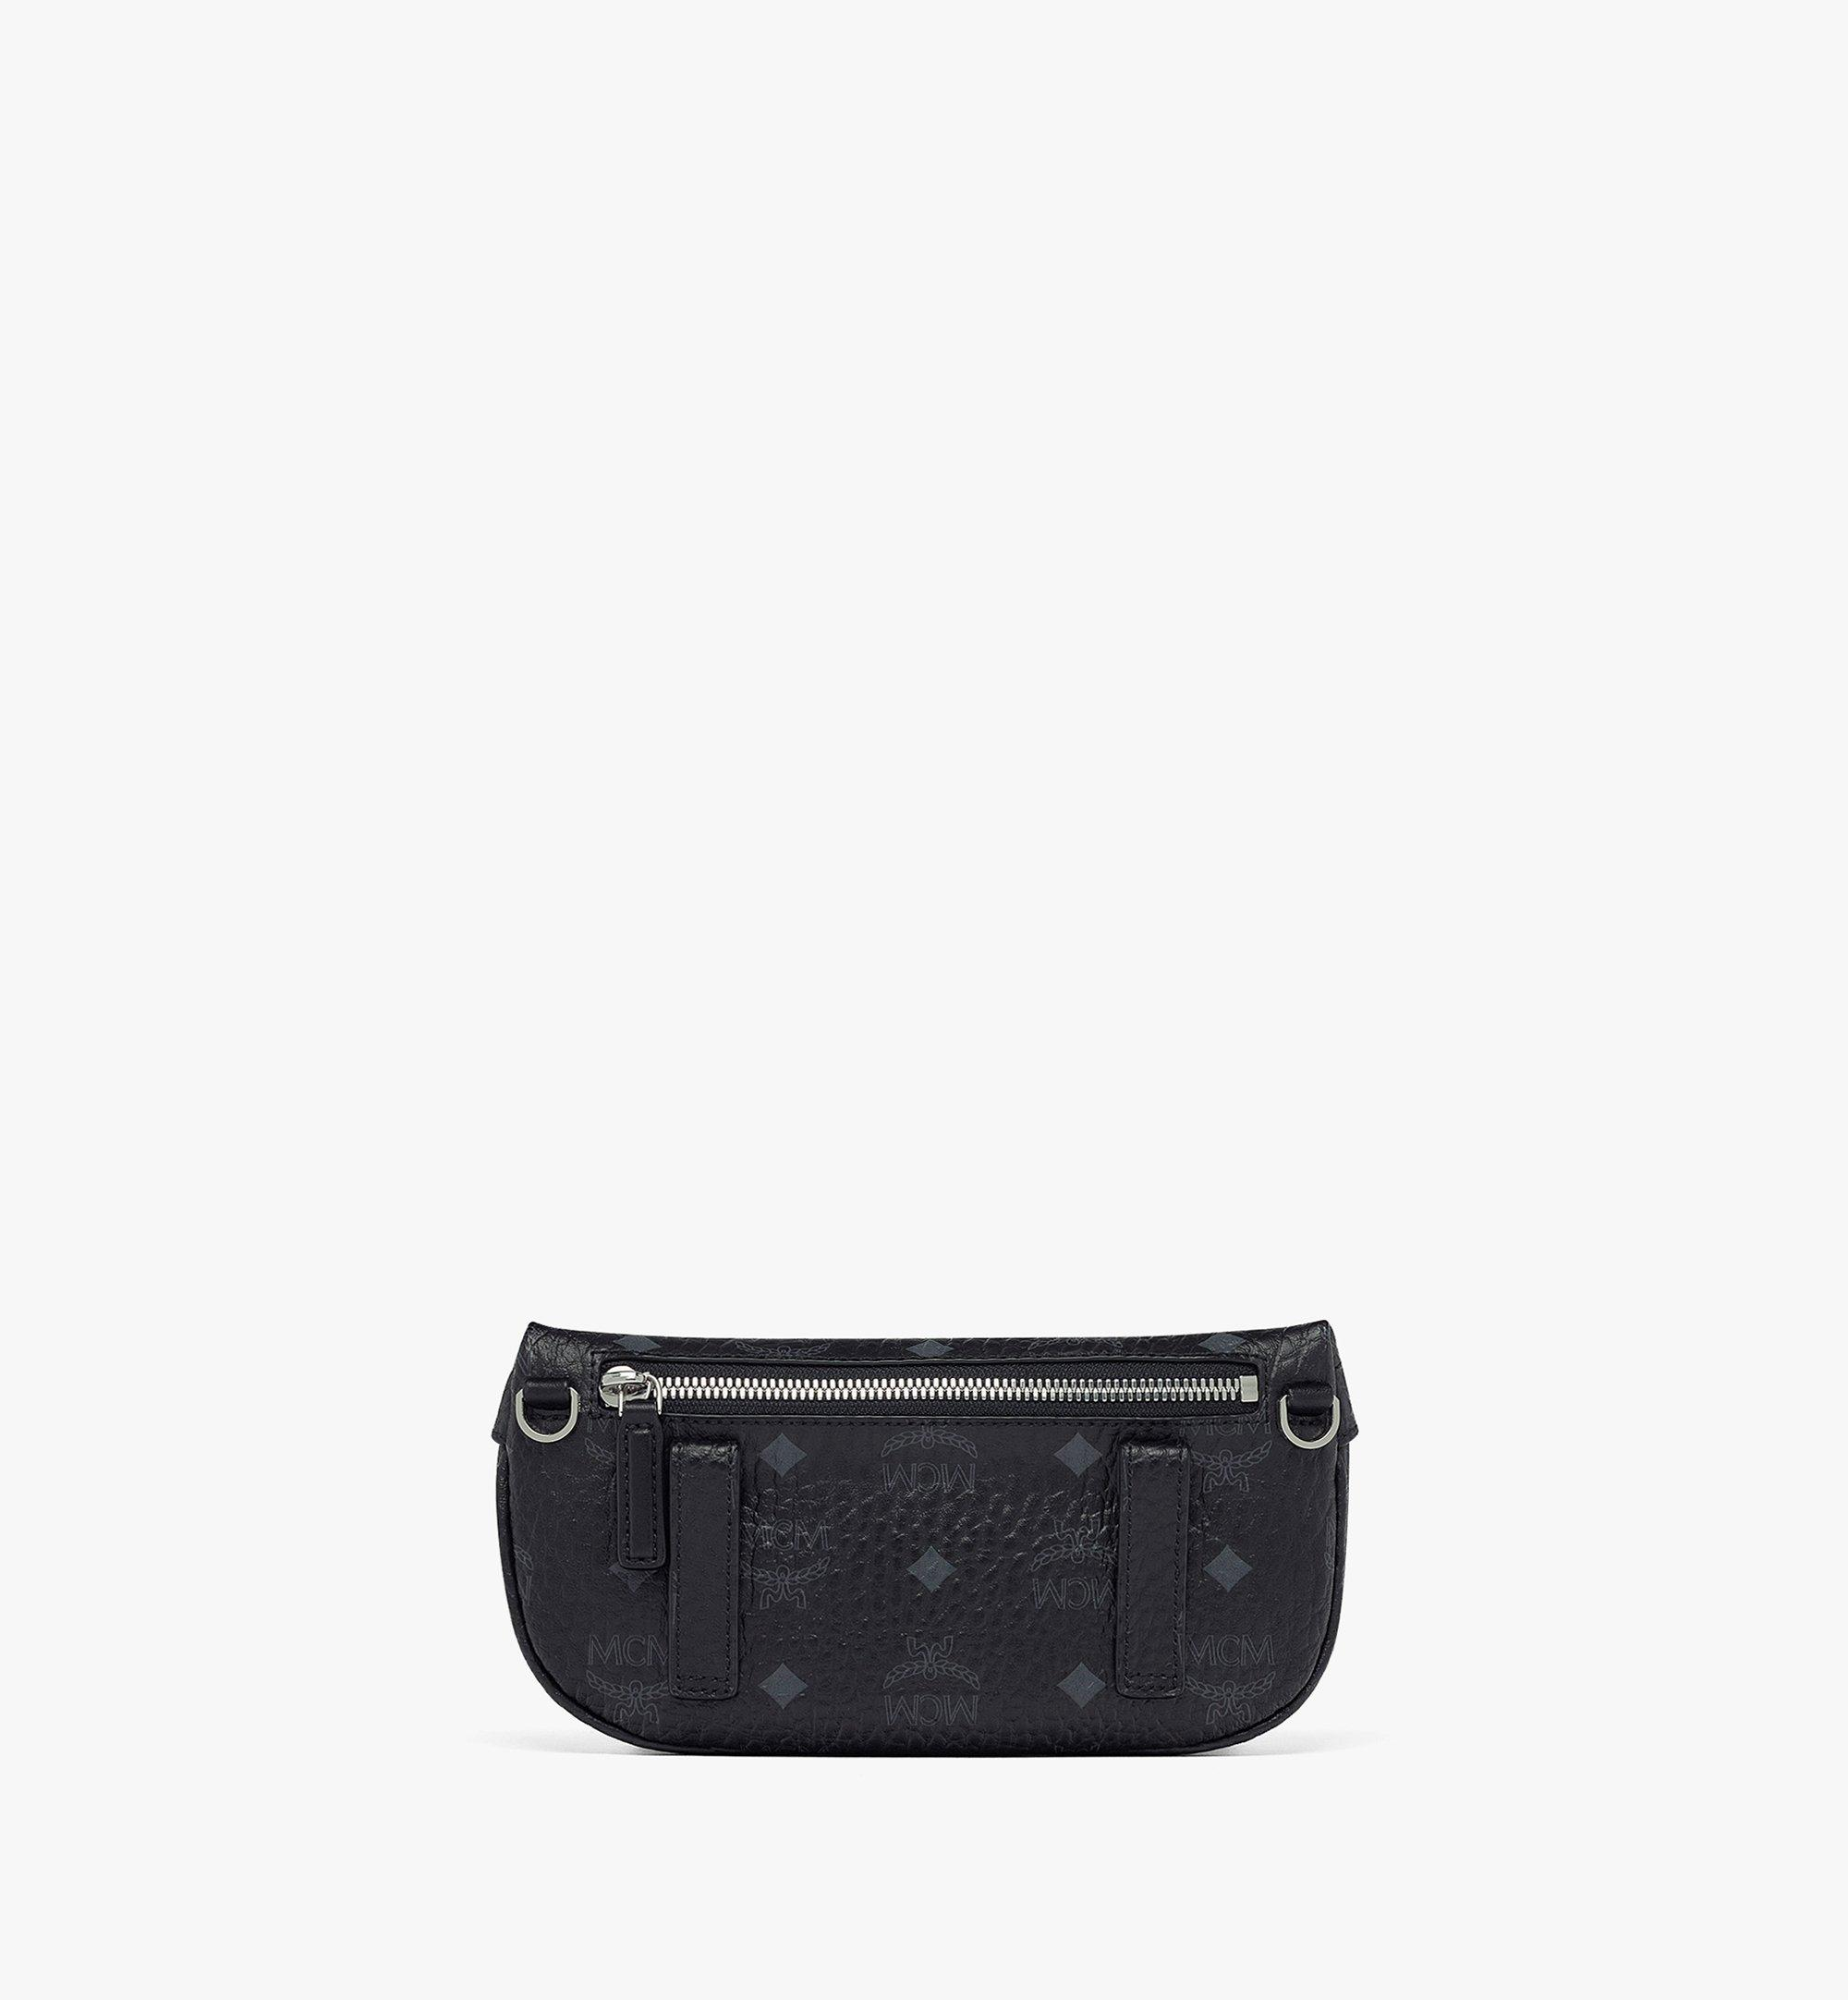 MCM Upcycling Project Crossbody in Visetos Black MMRBSUP01BK001 Alternate View 3